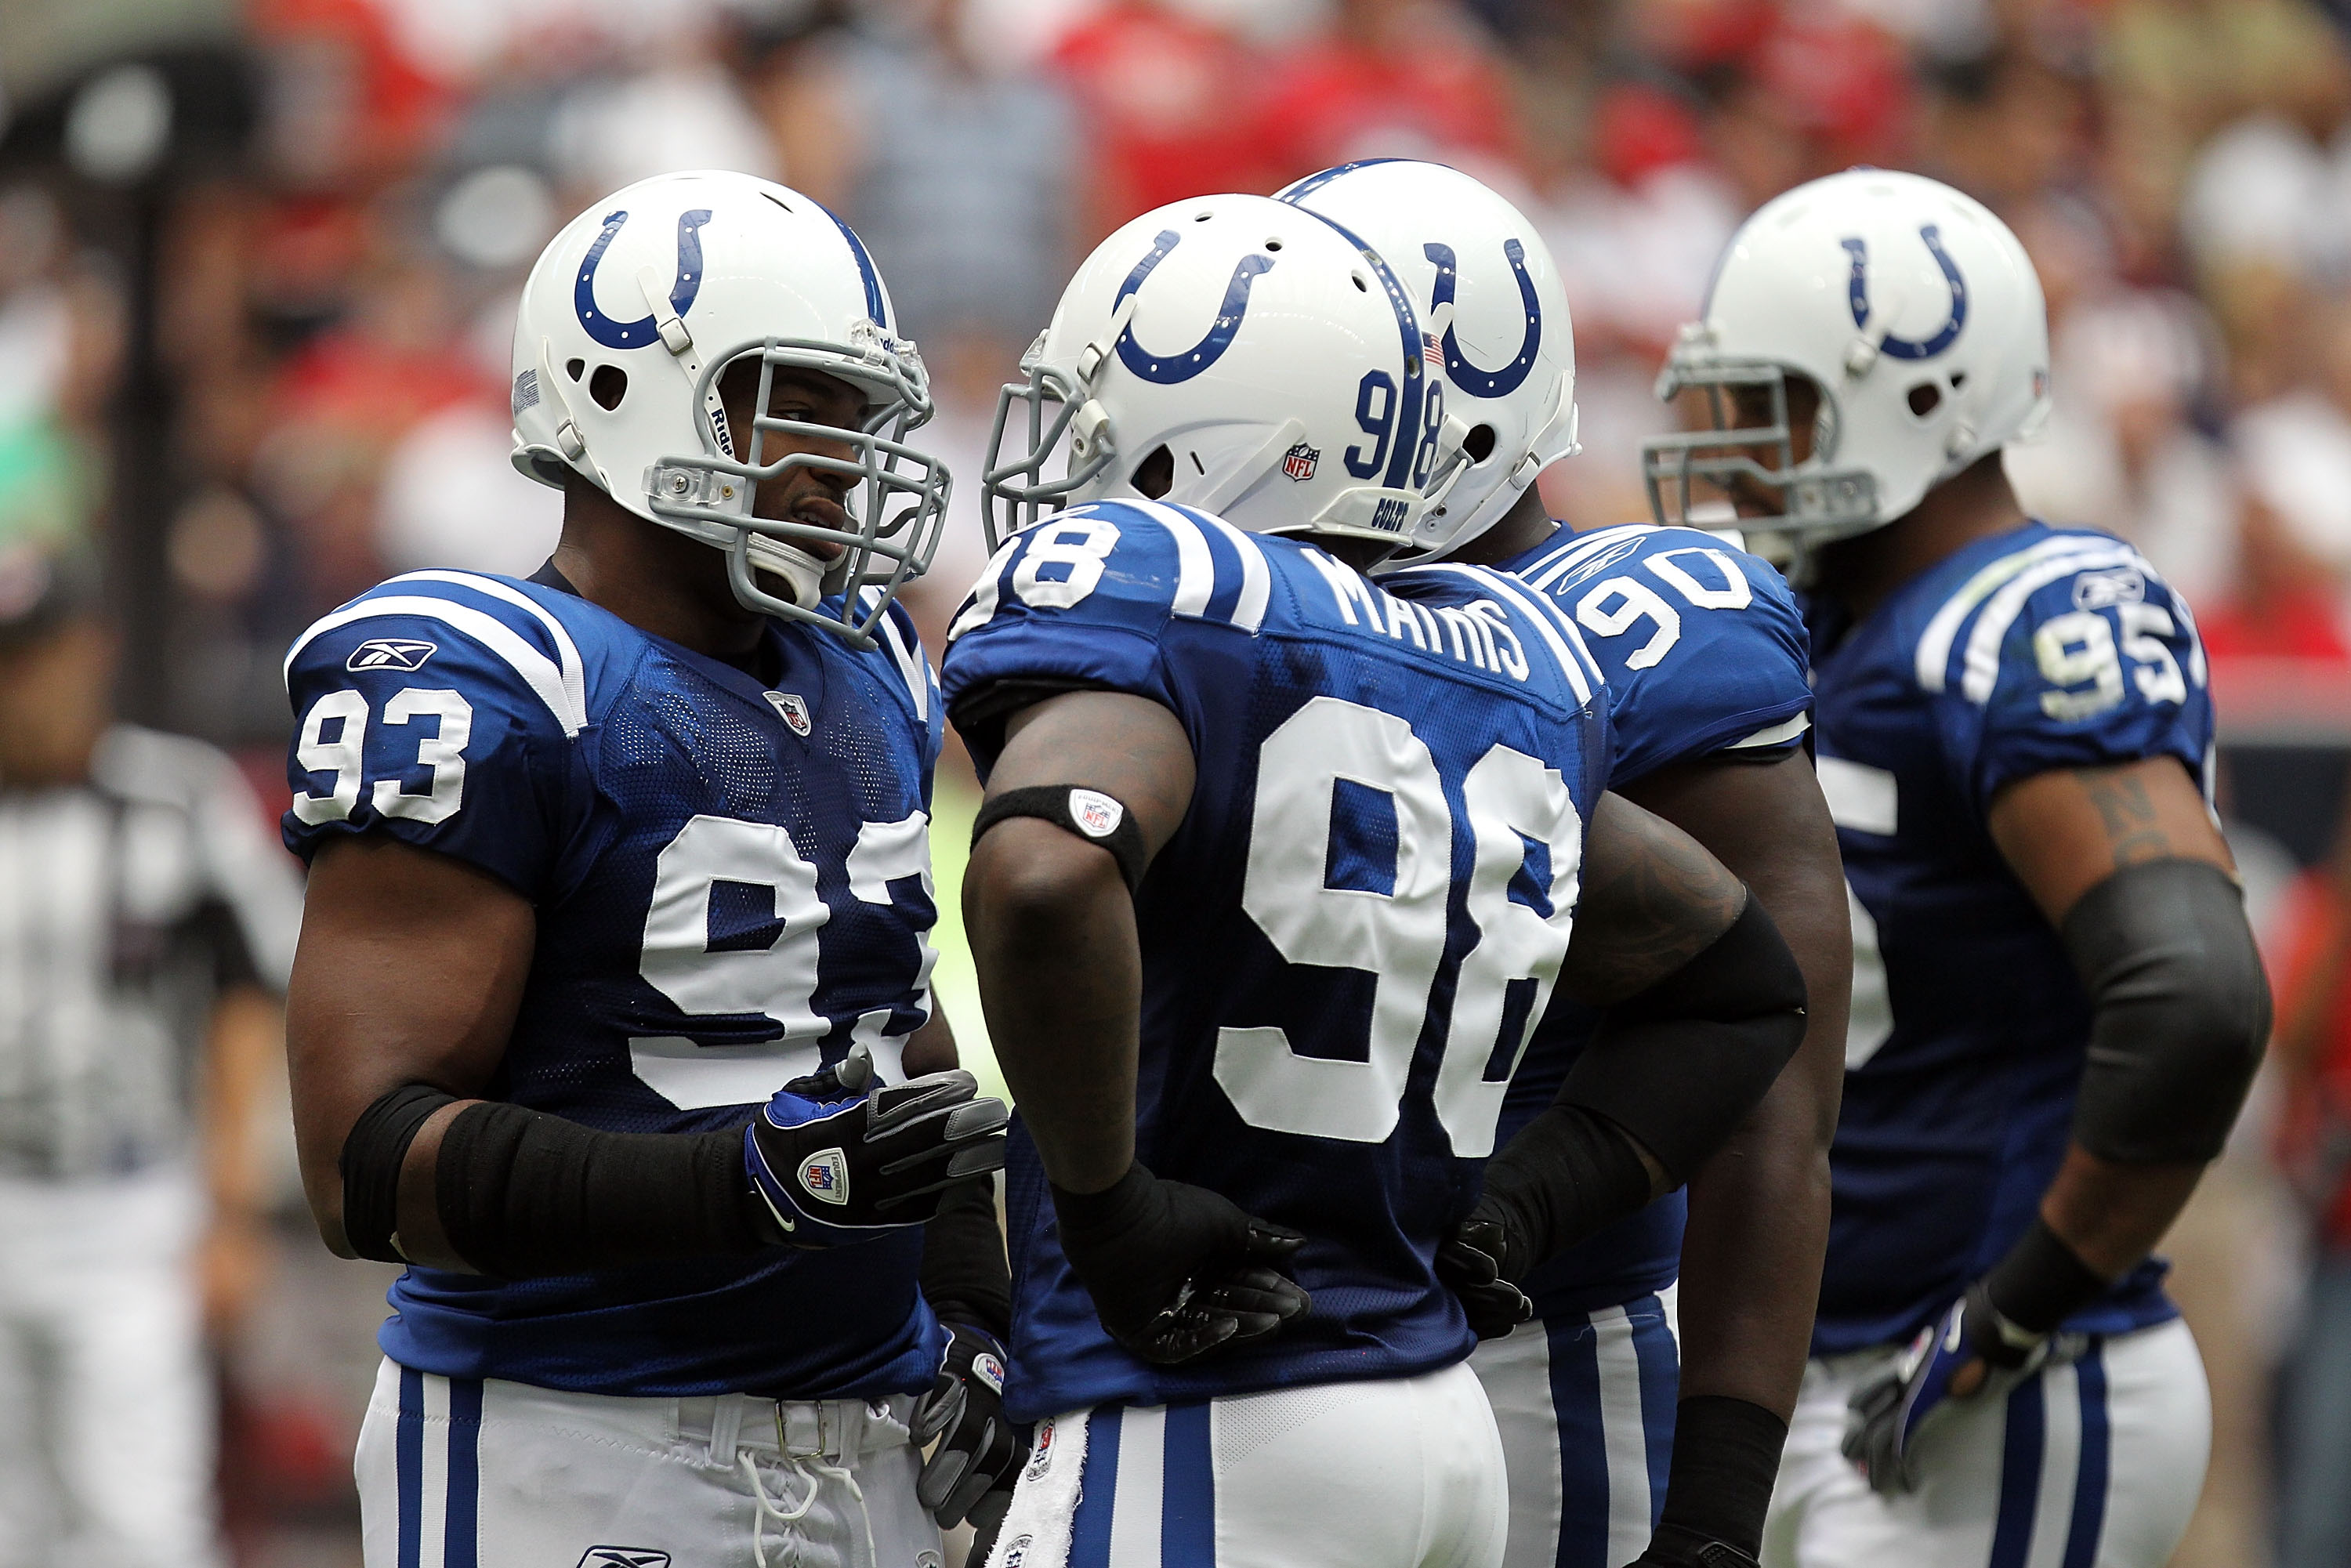 HOUSTON - SEPTEMBER 12:  Defensive end Dwight Freeney #93 and Robert Mathis #98 of the Indianapolis Colts at Reliant Stadium on September 12, 2010 in Houston, Texas.  (Photo by Ronald Martinez/Getty Images)